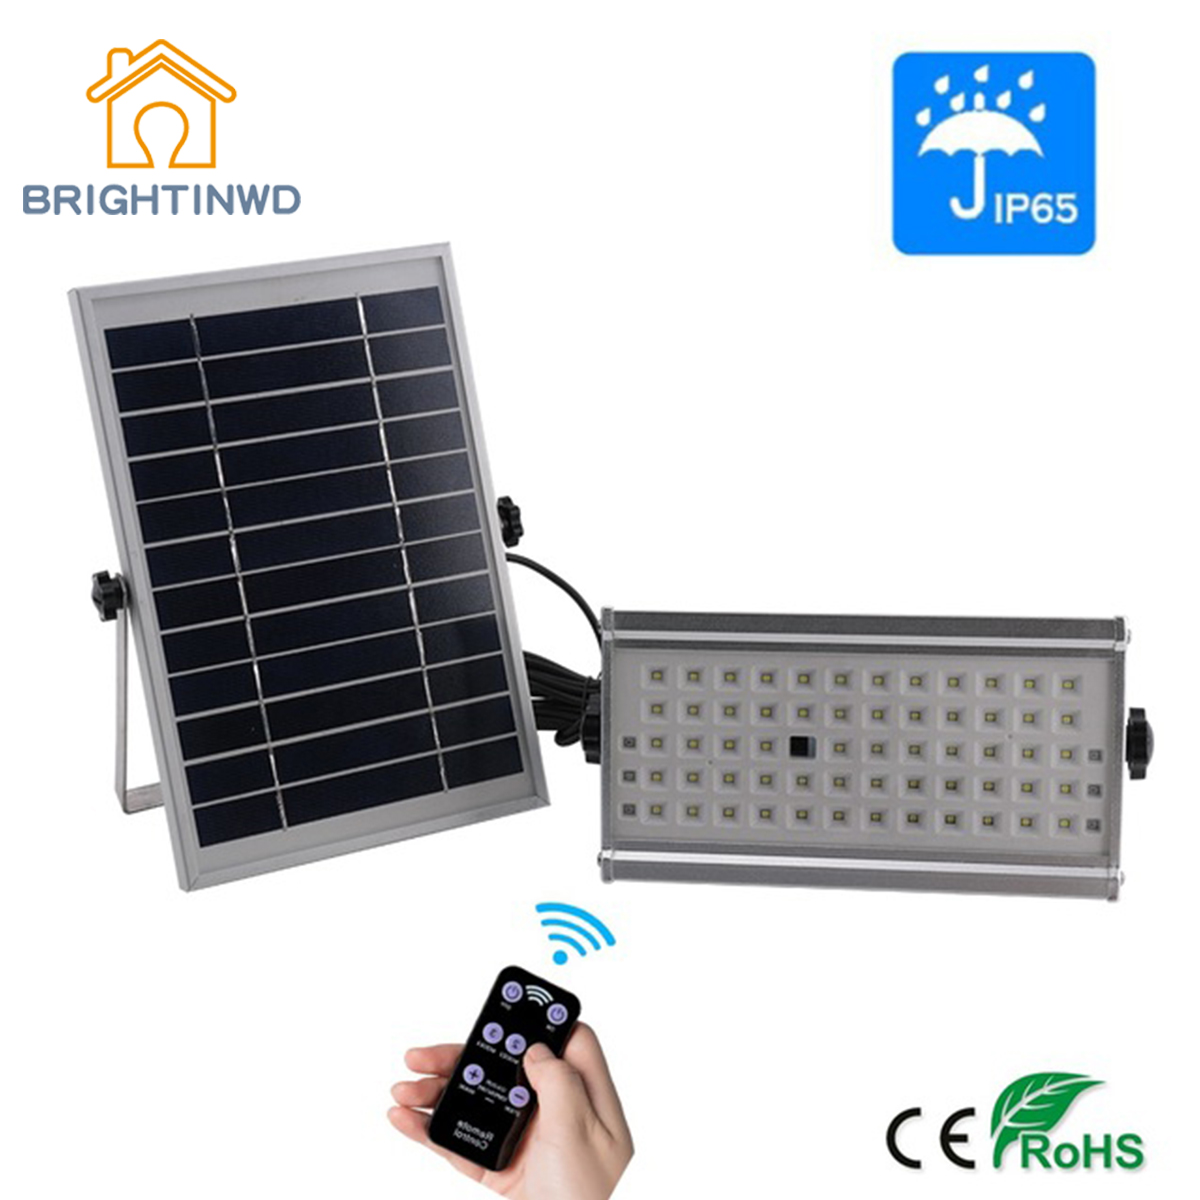 65LED Outdoor Motion Sensor Solar Light Solar Spotlight Remote IP65 Waterproof Wall Lamp Home Security Night Light BRIGHTINWD boruit 65led outdoor solar light 1500lm motion sensor solar spotlight remote ip65 waterproof wall lamp home security night light